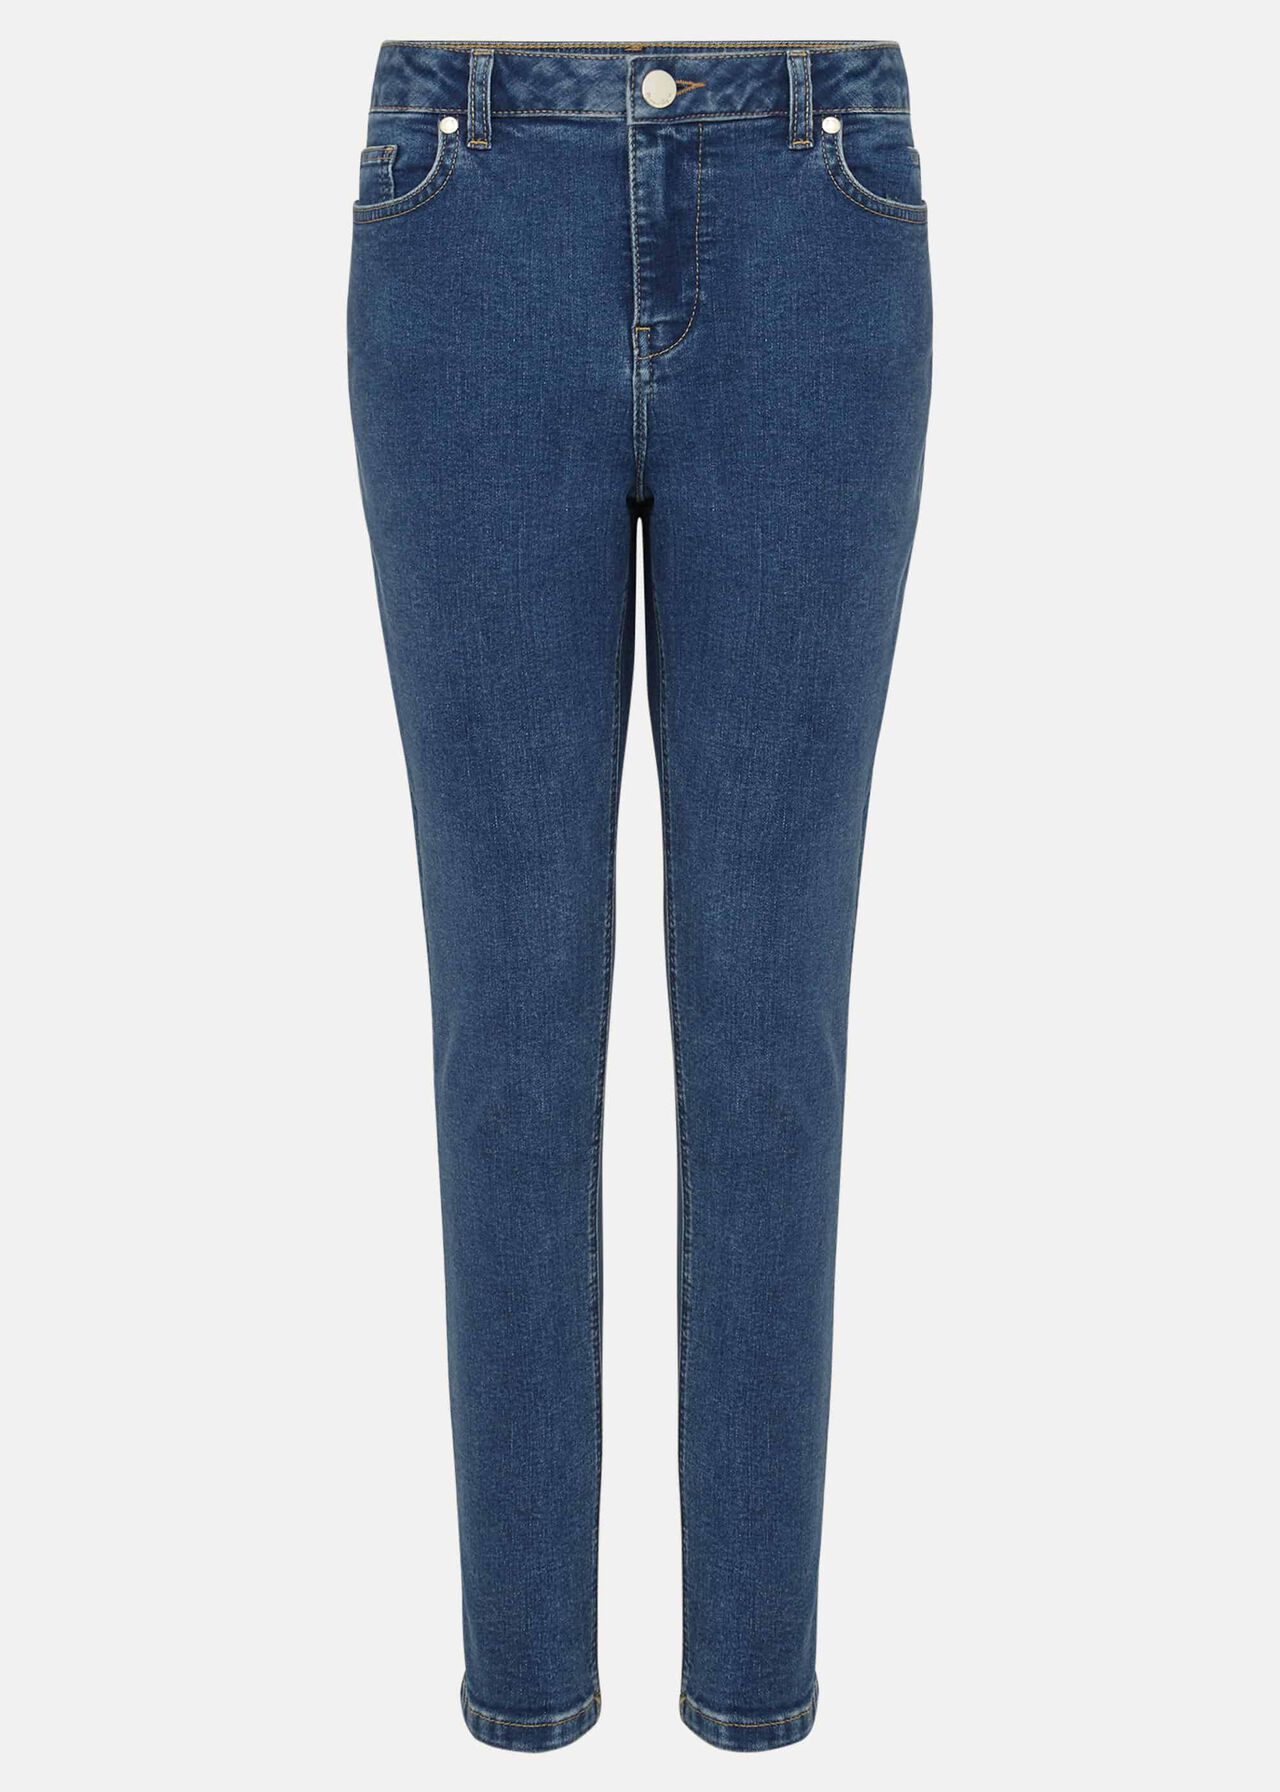 Pax Slim Fit Cropped Jeans